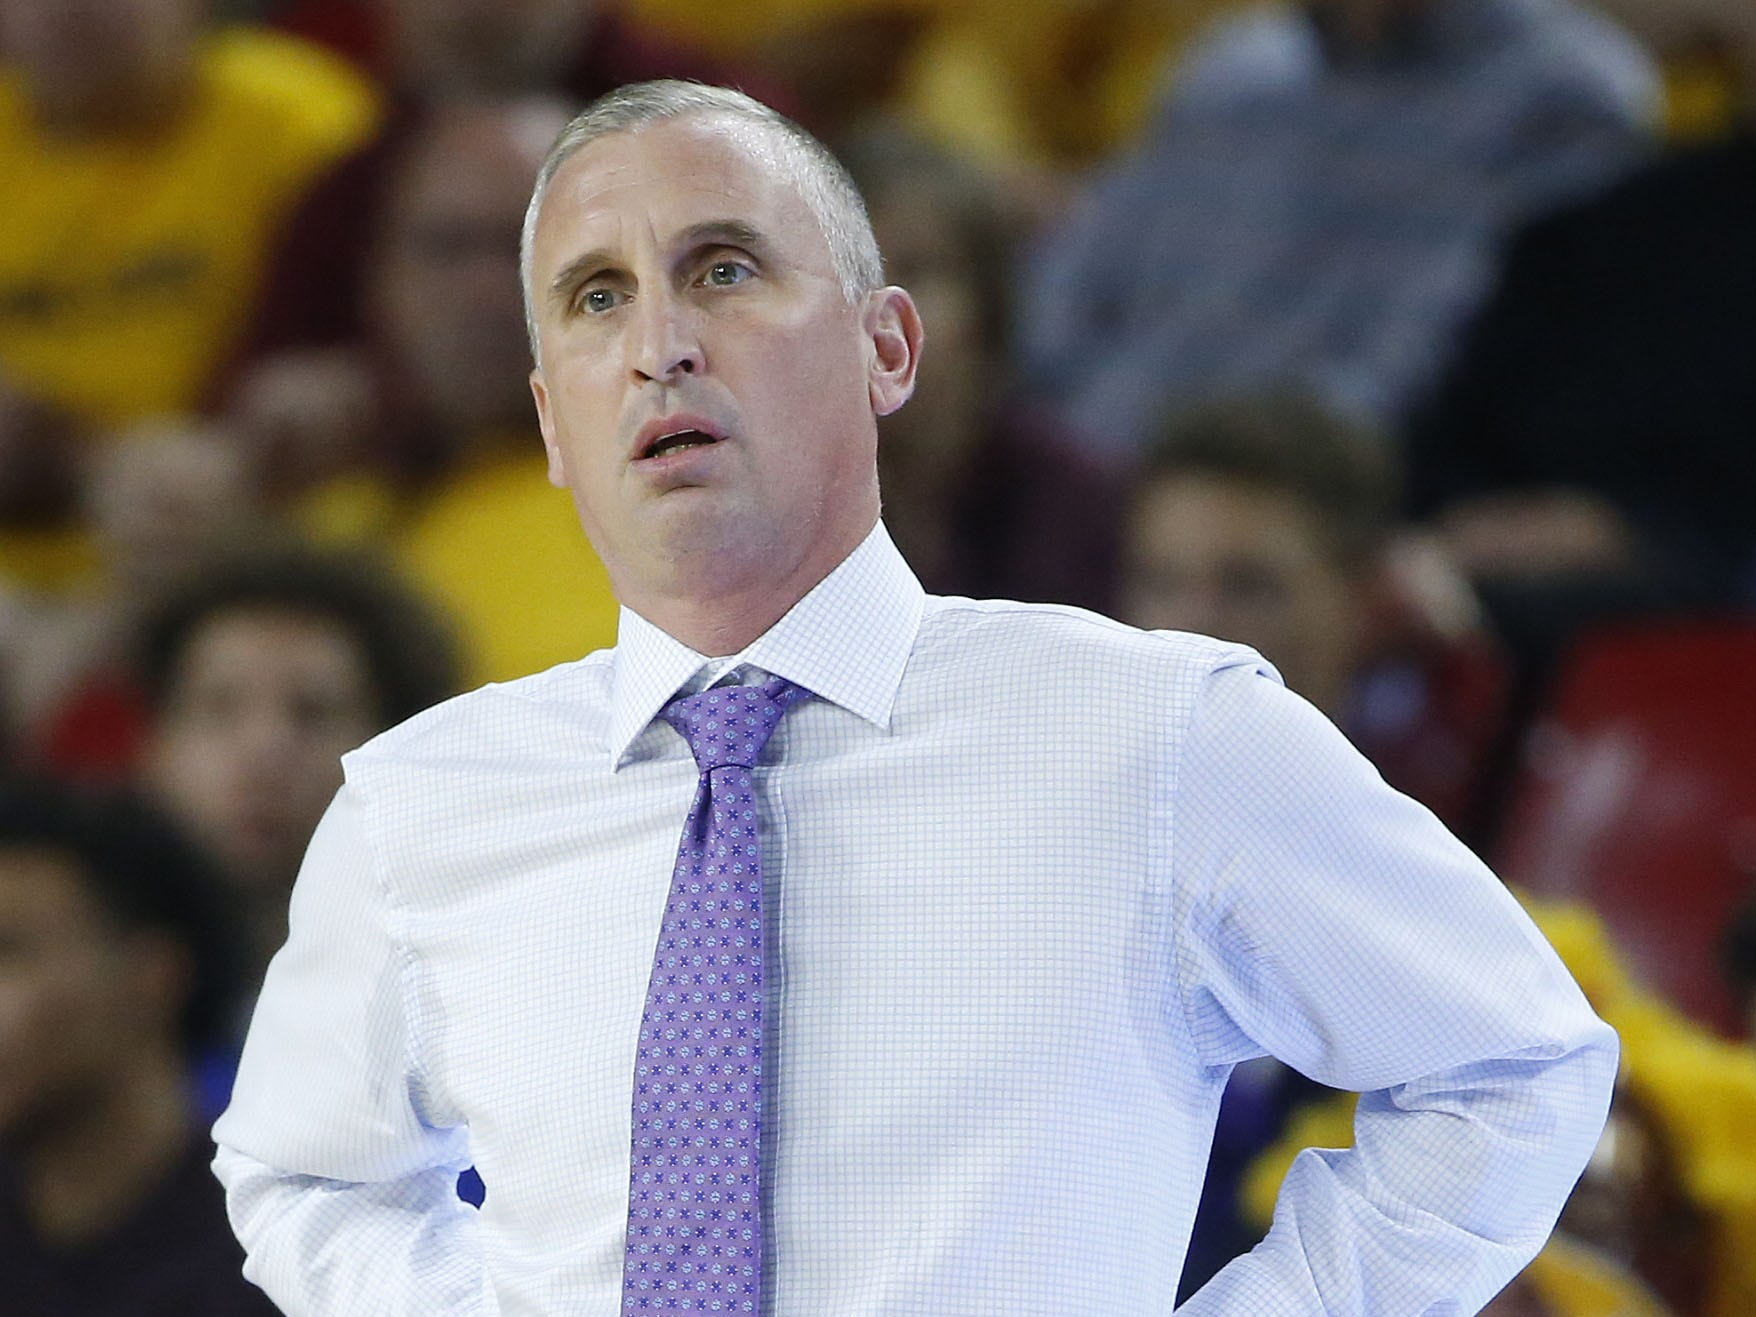 Arizona State head coach Bobby Hurley reacts to a call during the first half against McNeese State at Wells Fargo Arena in Tempe, Ariz. on November 9, 2018.